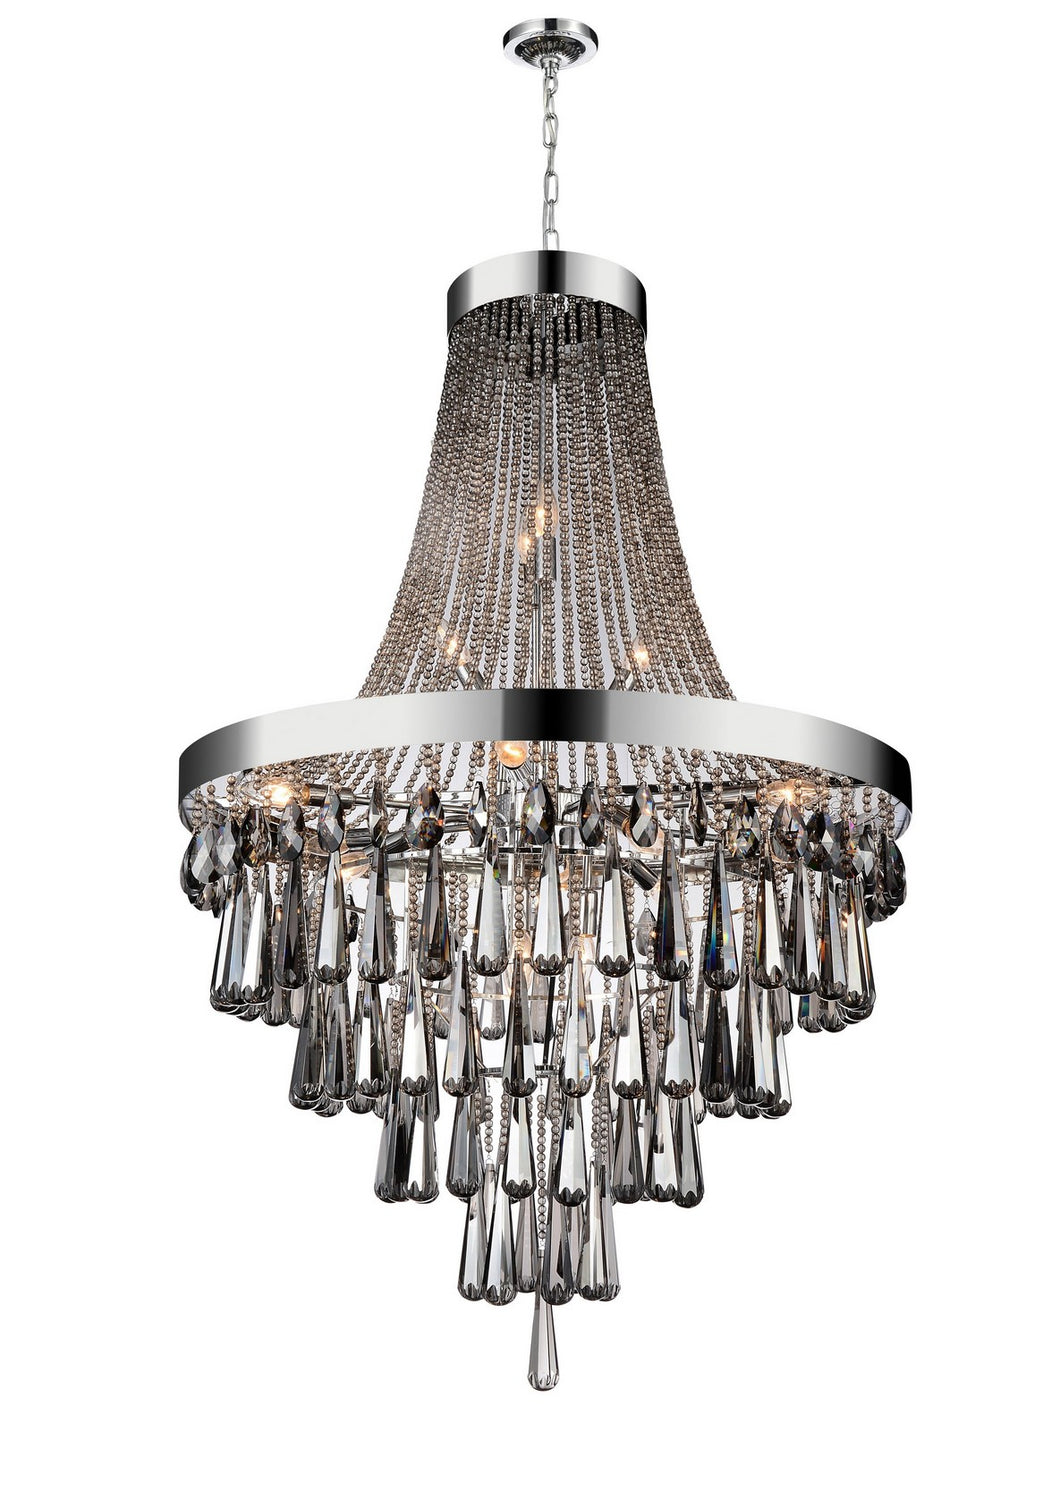 17 LIGHT DOWN CHANDELIER WITH CHROME FINISH - Dream art Gallery